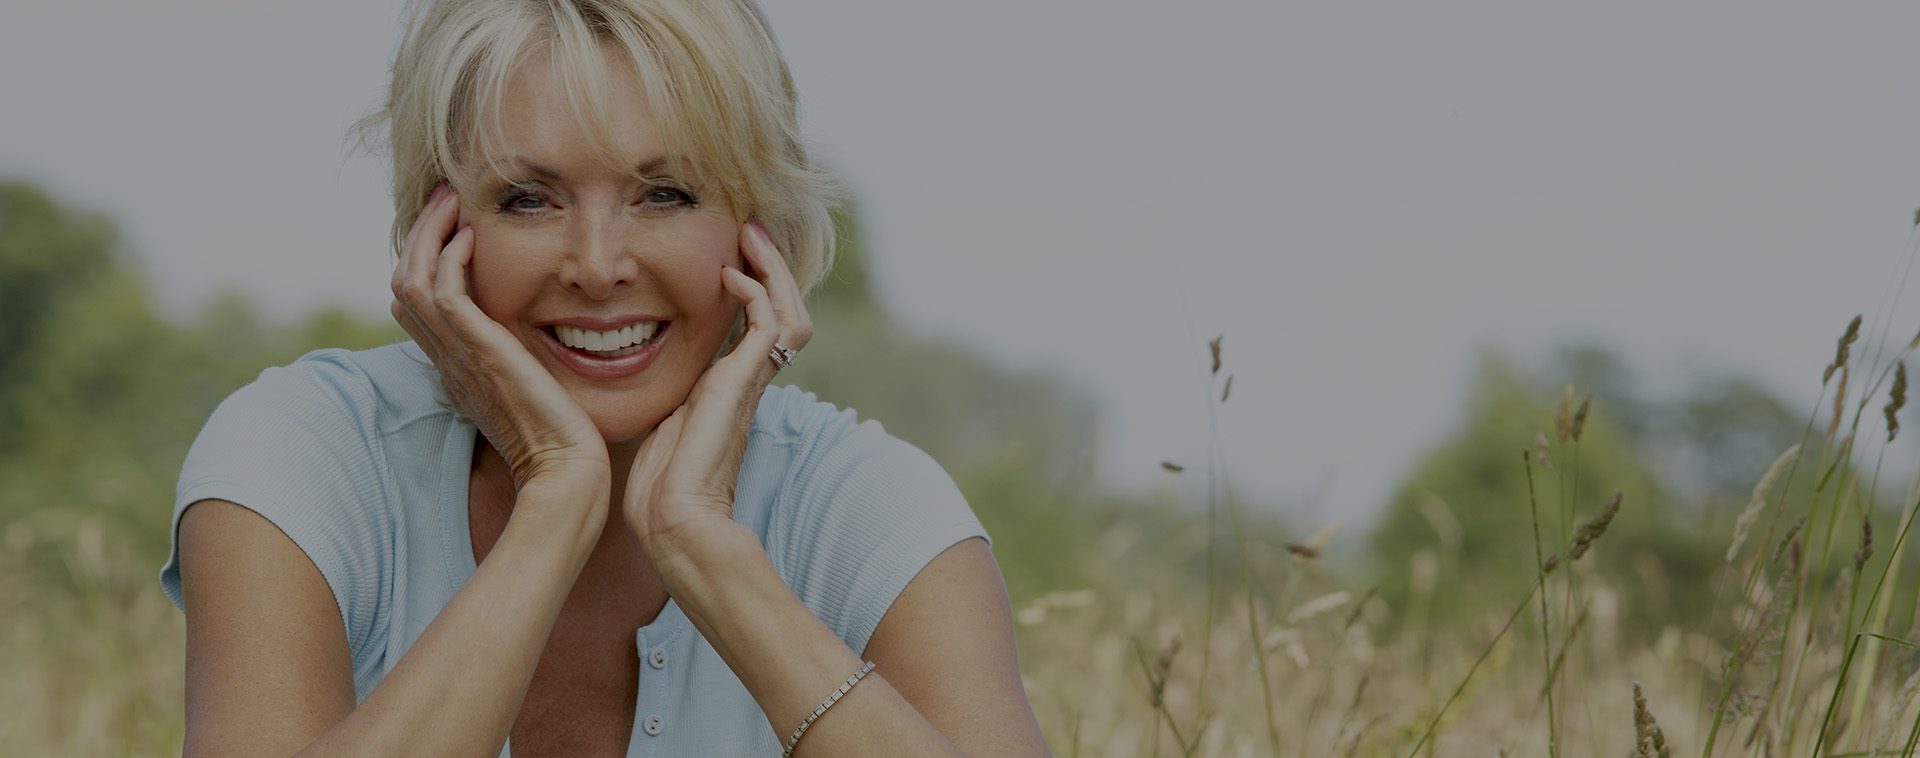 Mature Woman Sitting in a Field